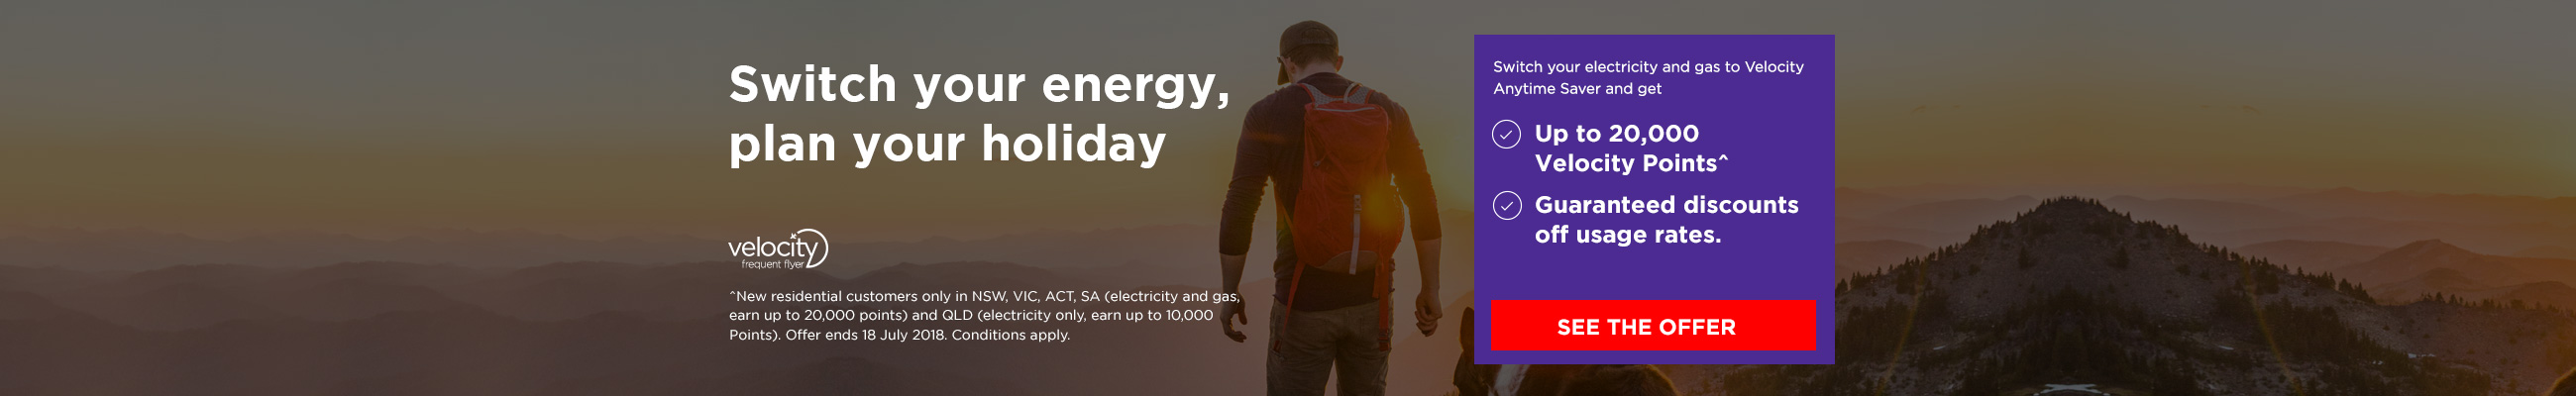 Switch your energy, plan your holiday